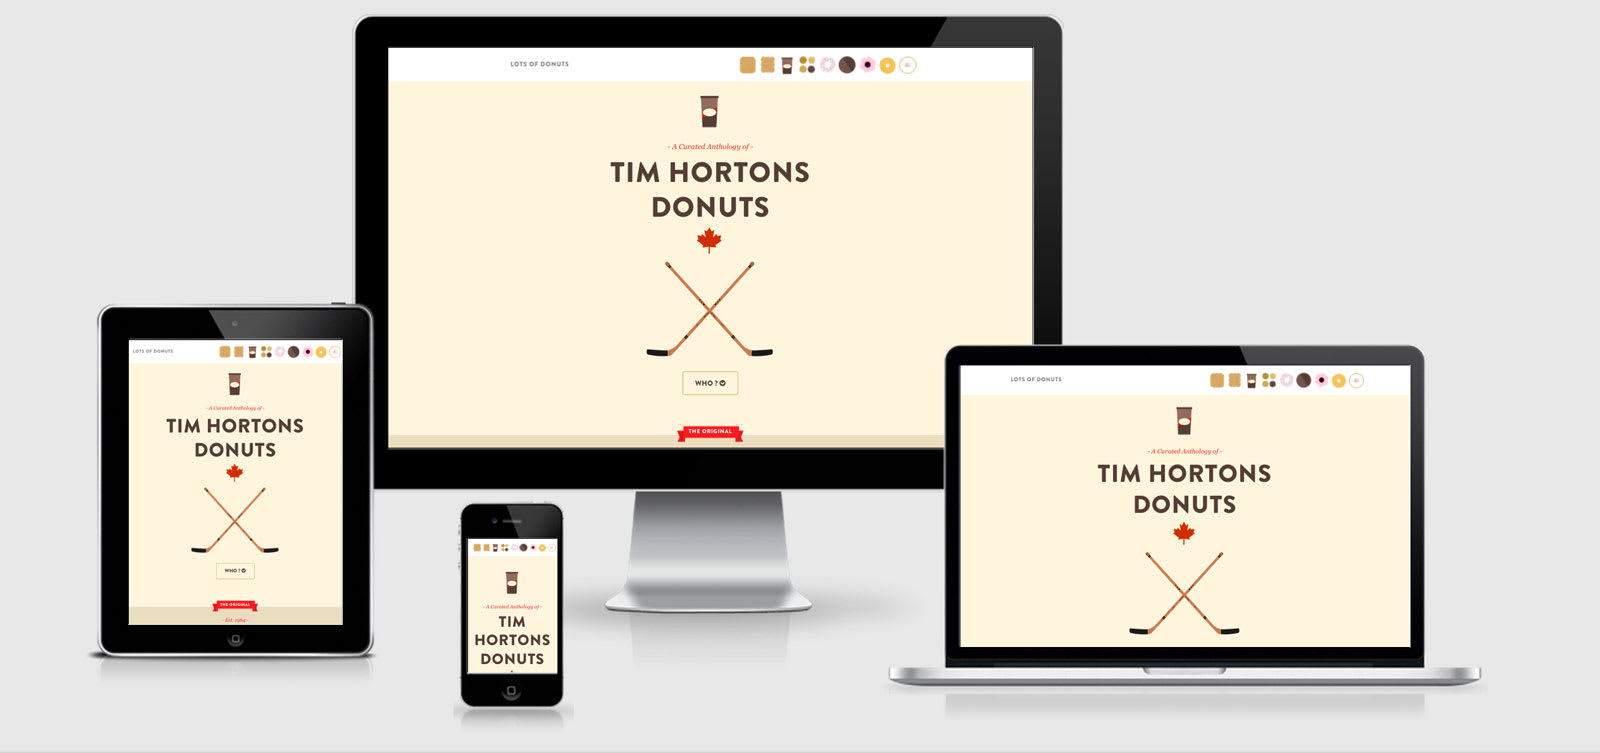 More Donuts responsive Design example